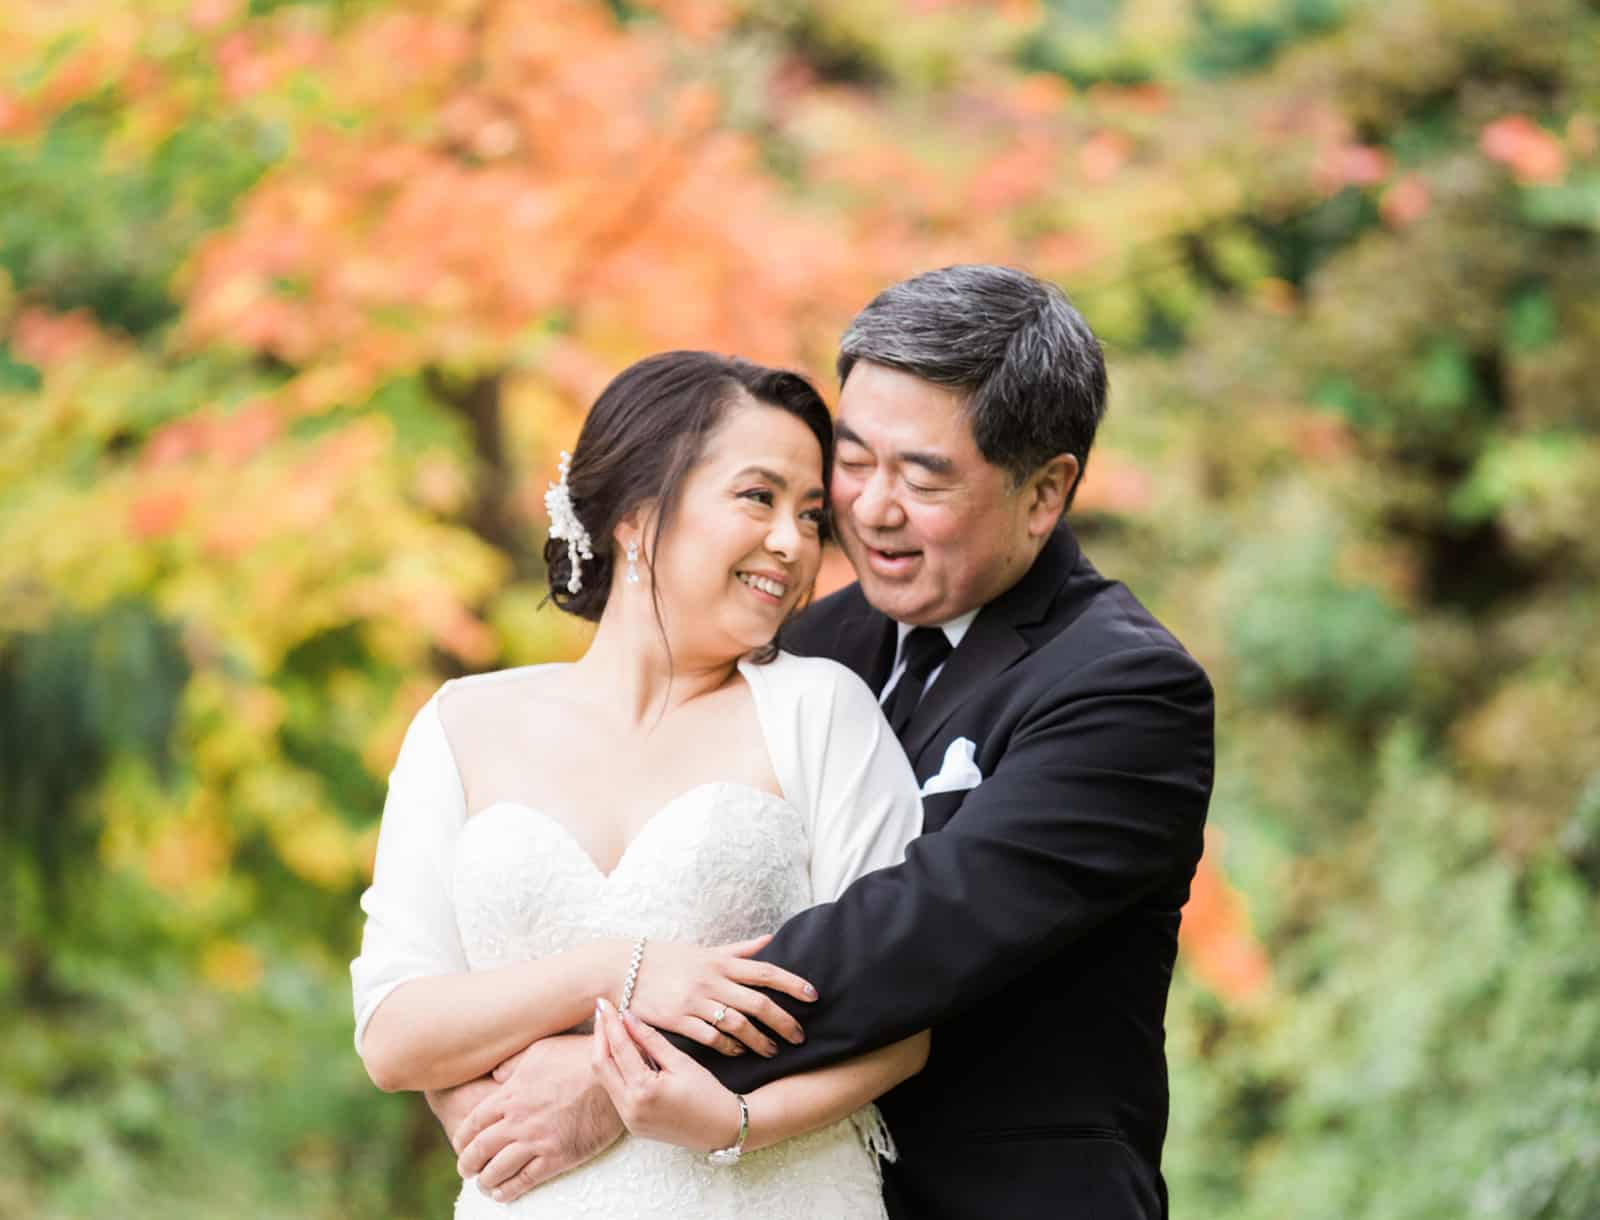 Toronto Estates of Sunnybrook Fall Wedding